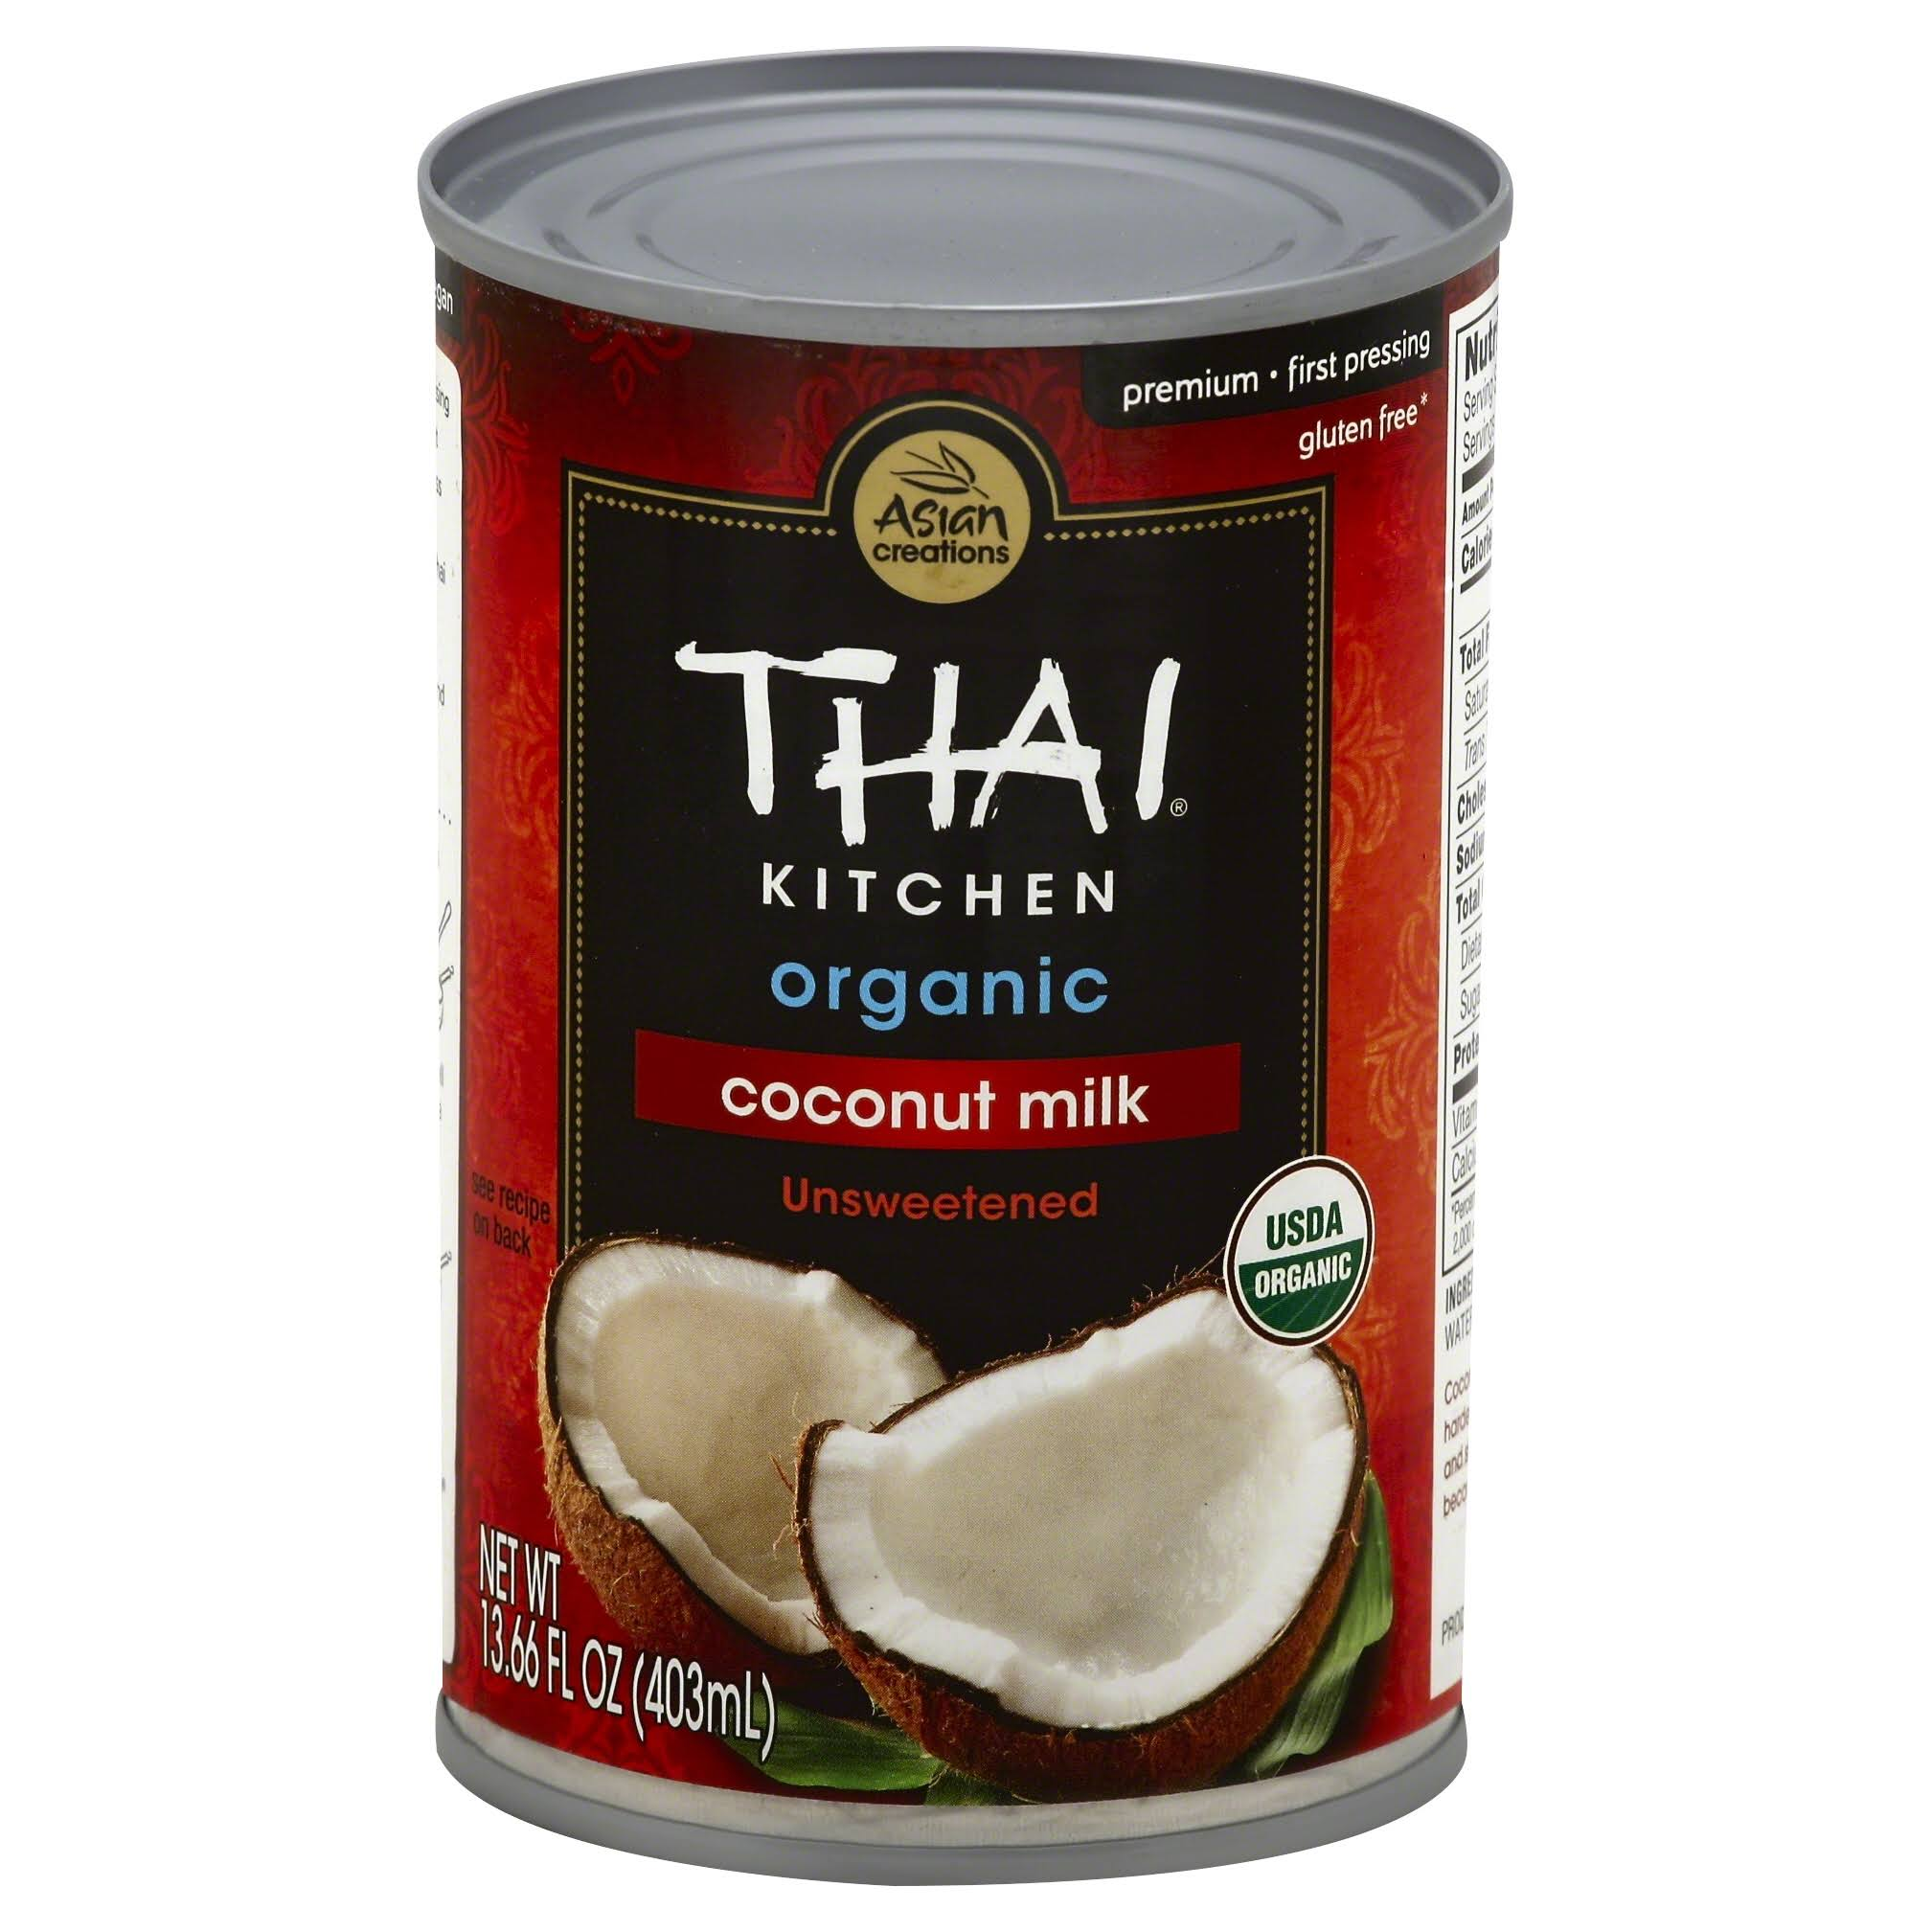 Thai Kitchen Coconut Milk - Unsweetened, 13.66oz